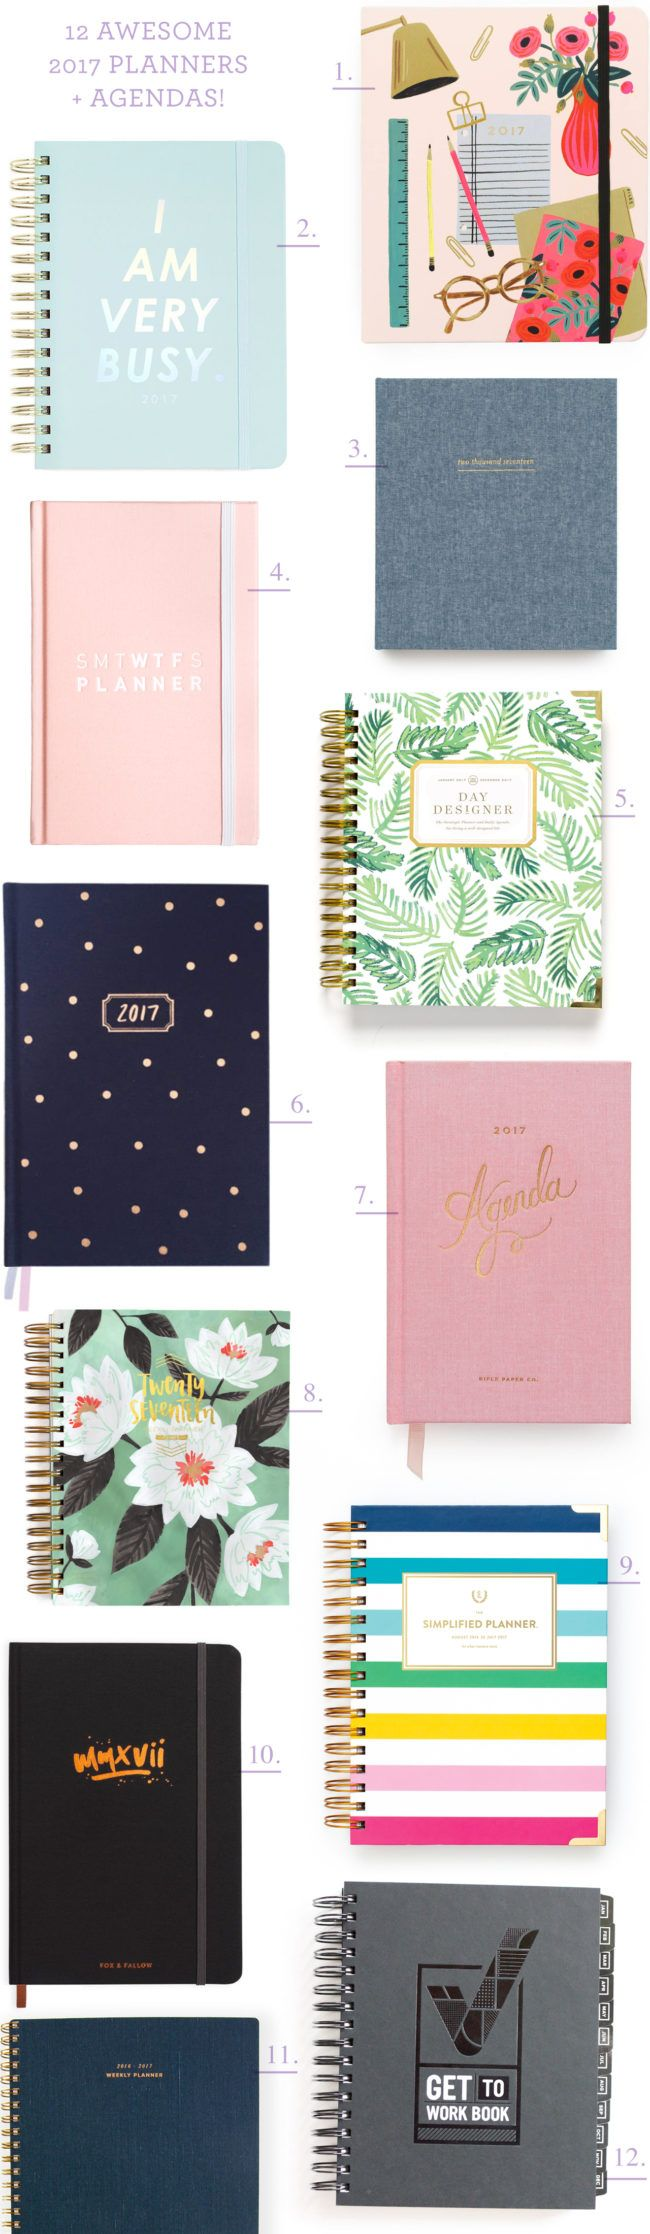 Twelve Awesome 2017 Planners and Agendas